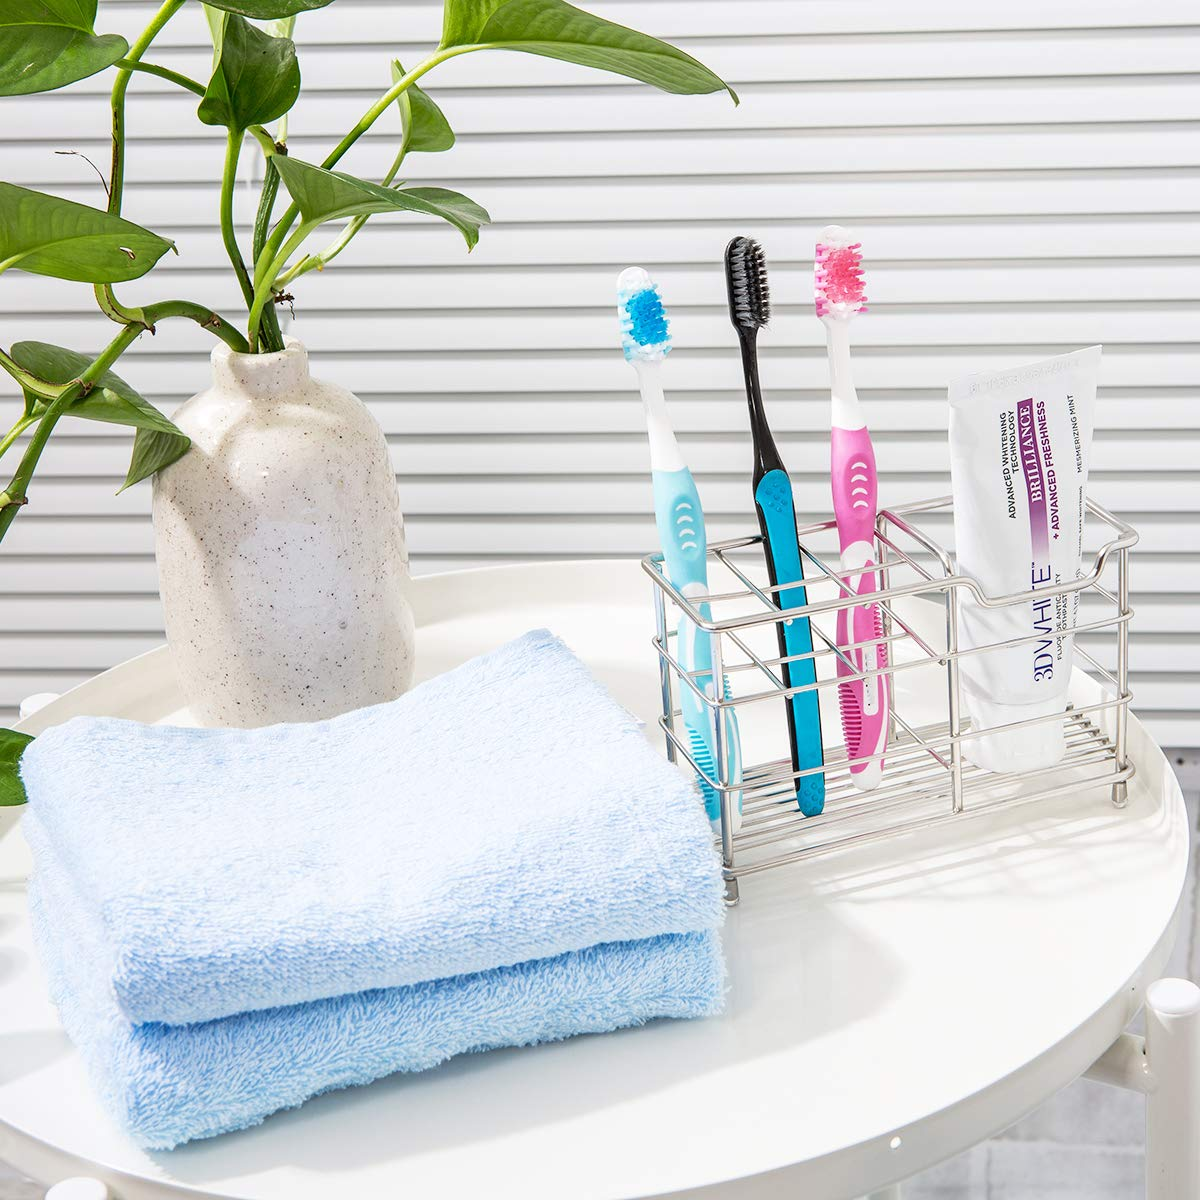 Amazer Toothbrush Holder Stainless Steel Rustproof Metal Bathroom Toothpaste Holder Stand with Multi-Functional 7 Slots for Toothbrush Toothpaste Cleanser